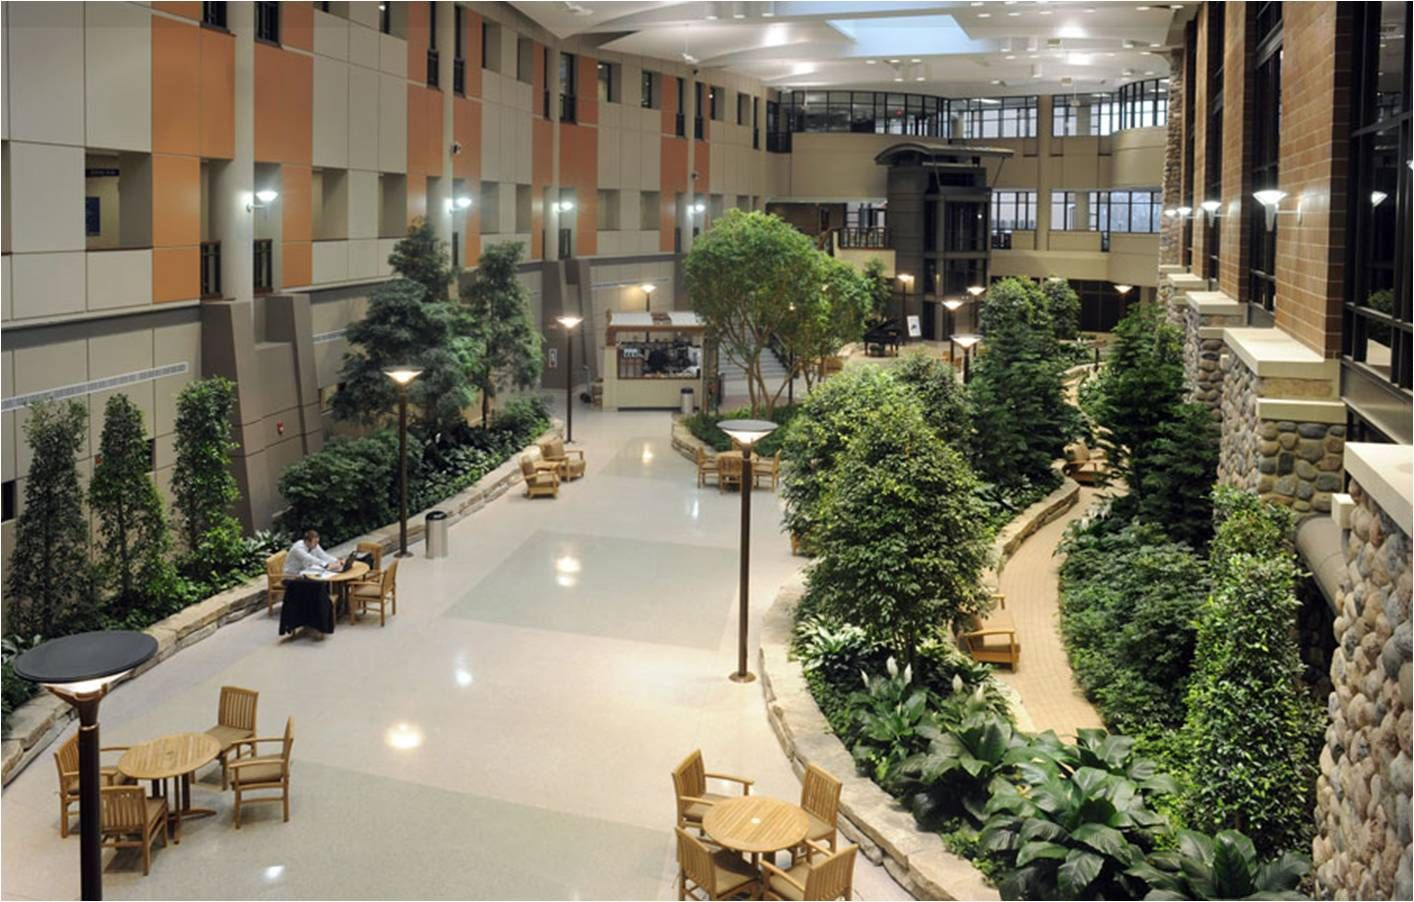 Search Results The 25 Most Beautiful Hospitals In The World